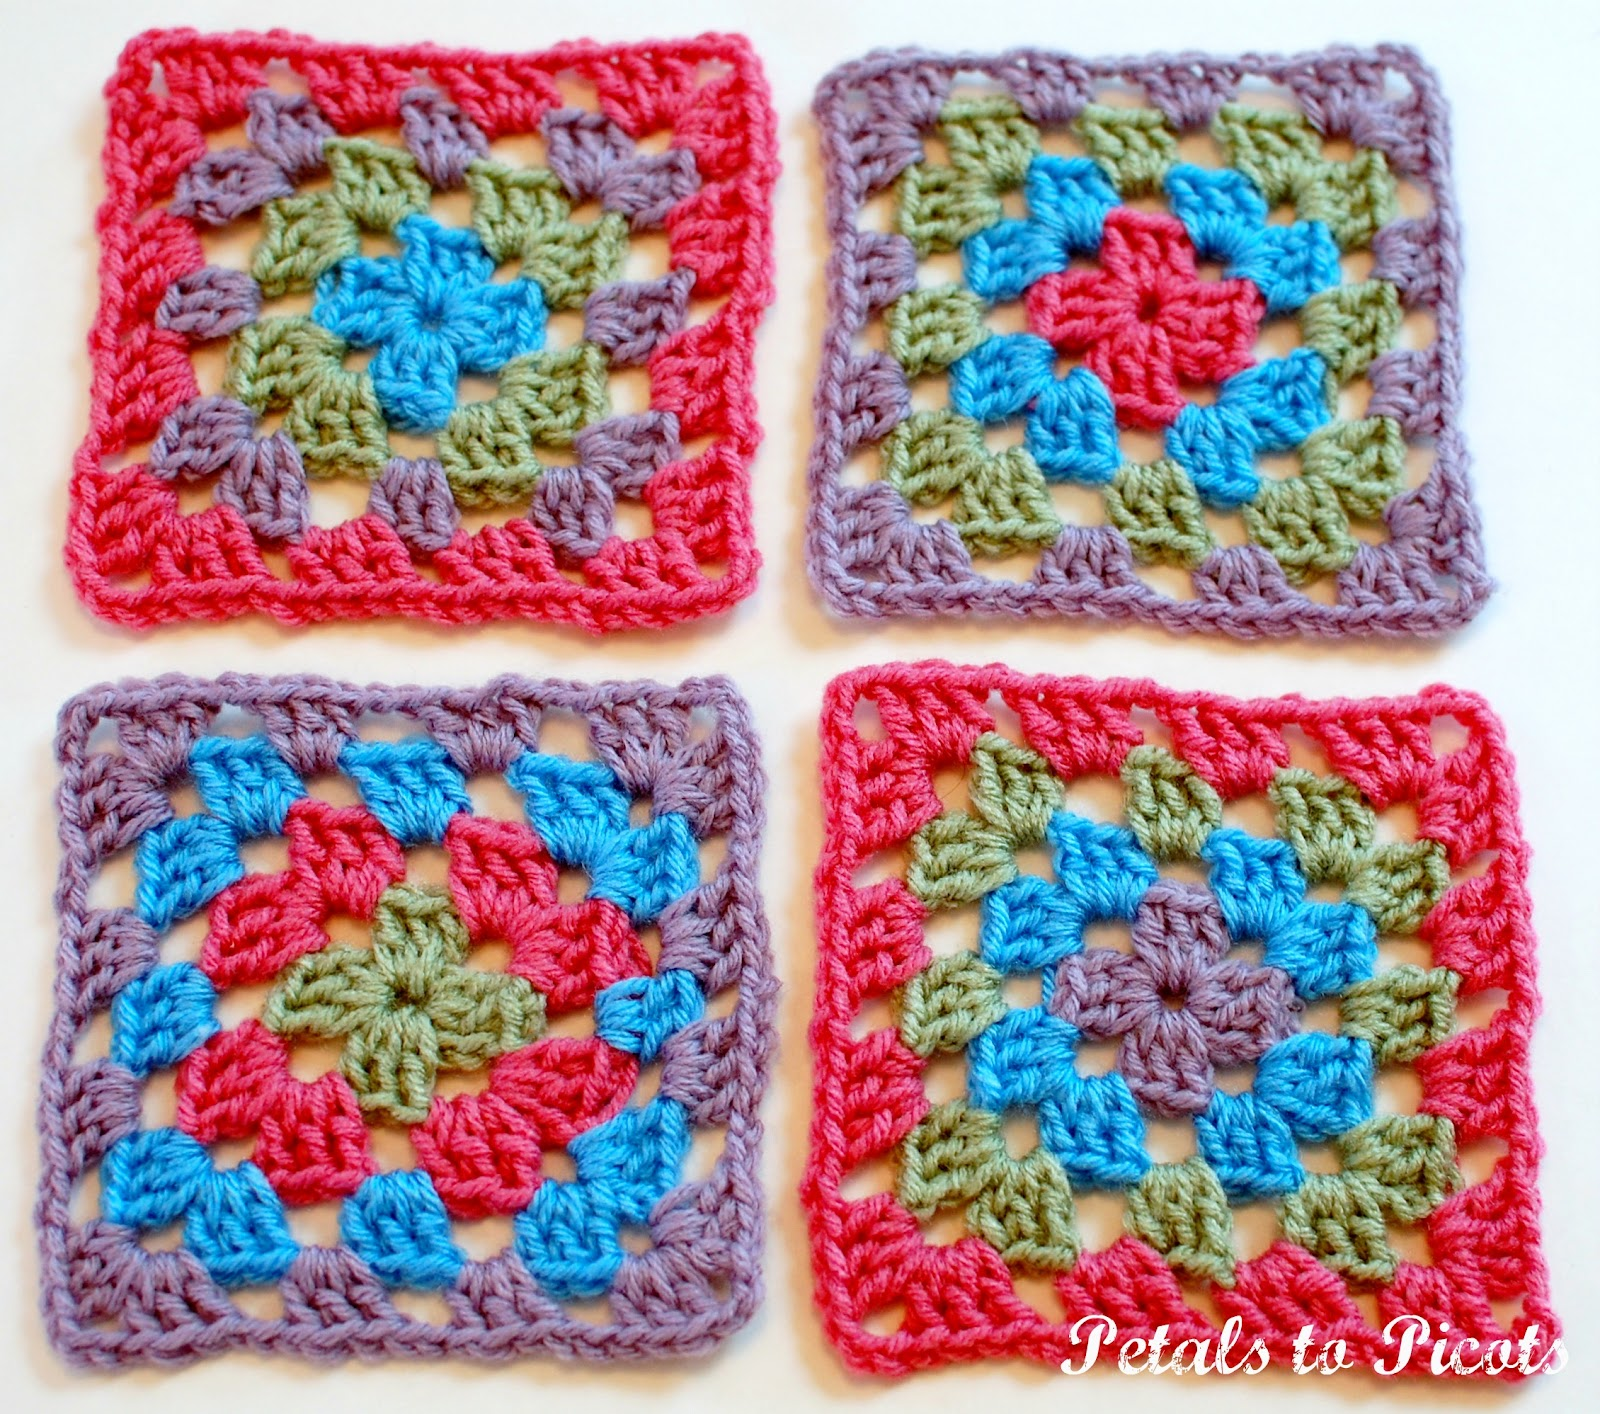 How to Crochet a Classic Granny Square: Granny Square Pattern | Petals ...